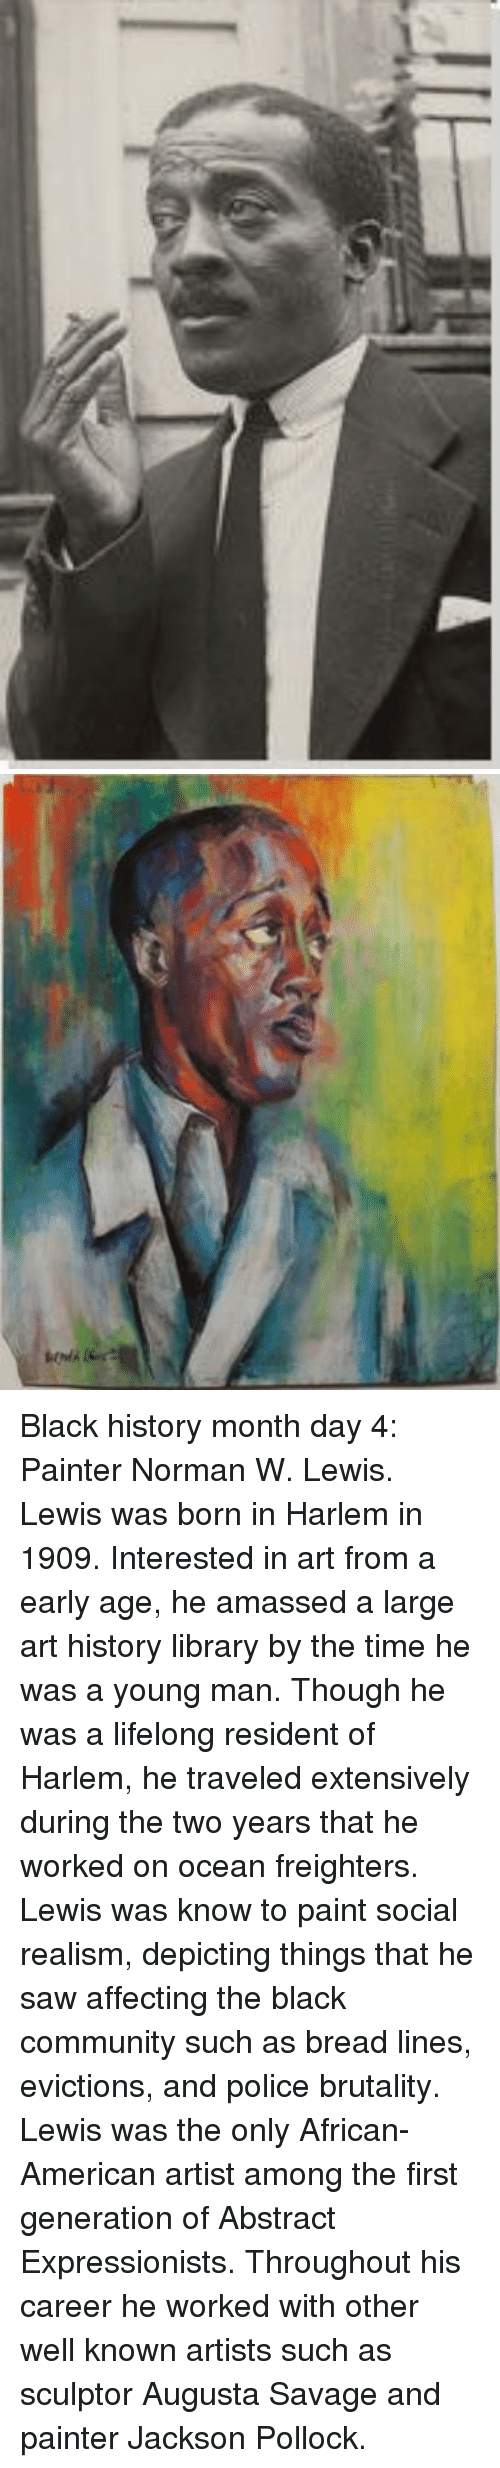 art history: <p>Black history month day 4: Painter Norman W. Lewis.</p>  <p>Lewis was born in Harlem in 1909. Interested in art from a early age, he amassed a large art history library by the time he was a young man. Though he was a lifelong resident of Harlem, he traveled extensively during the two years that he worked on ocean freighters. </p>  <p>Lewis was know to paint social realism, depicting things that he saw affecting the black community such as bread lines, evictions, and police brutality. </p>  <p>Lewis was the only African- American artist among the first generation of Abstract Expressionists. Throughout his career he worked with other well known artists such as sculptor Augusta Savage and painter Jackson Pollock.</p>